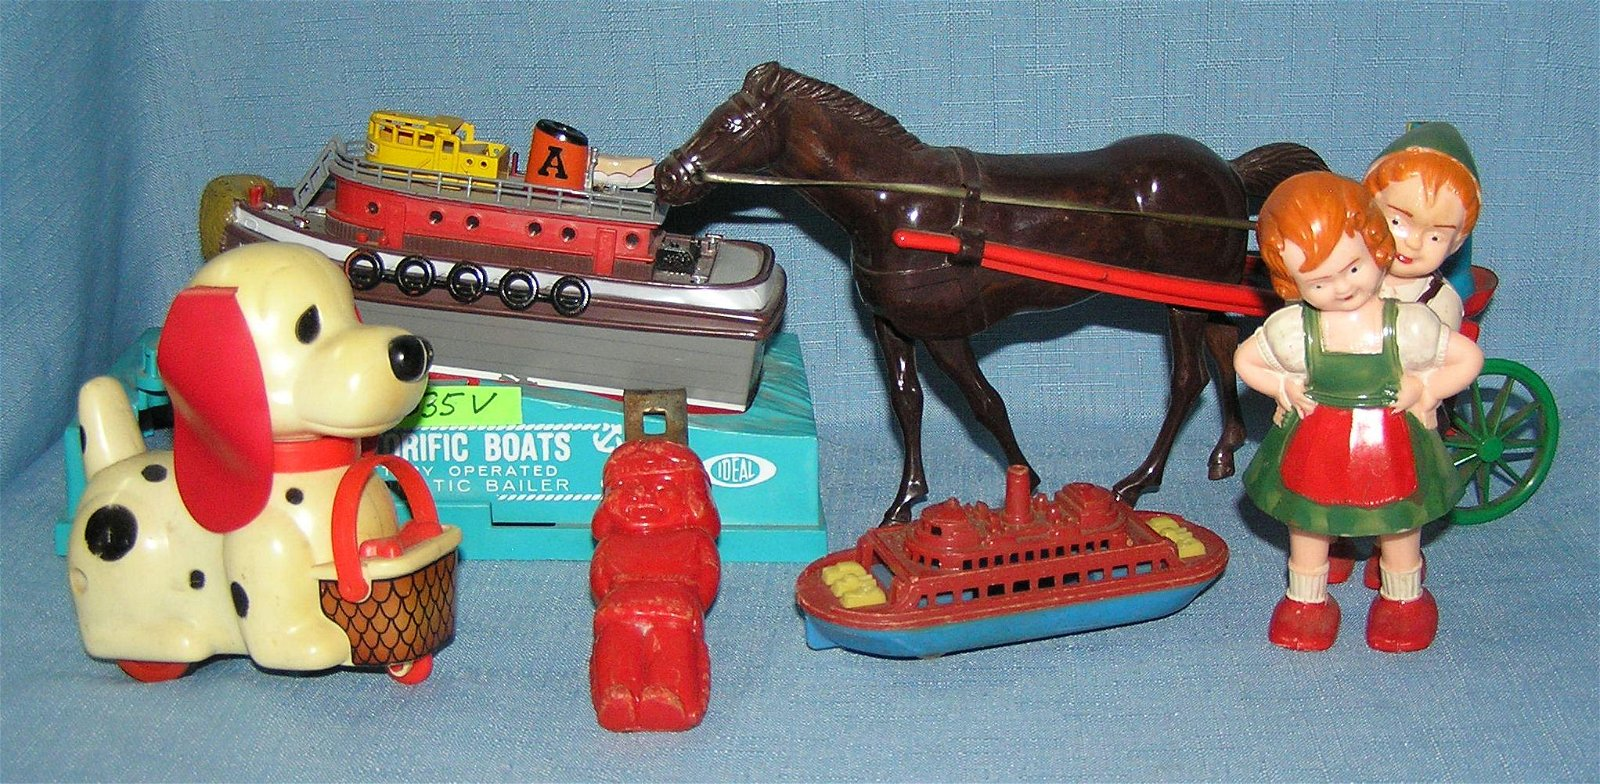 Vintage hard plastic toys and collectables